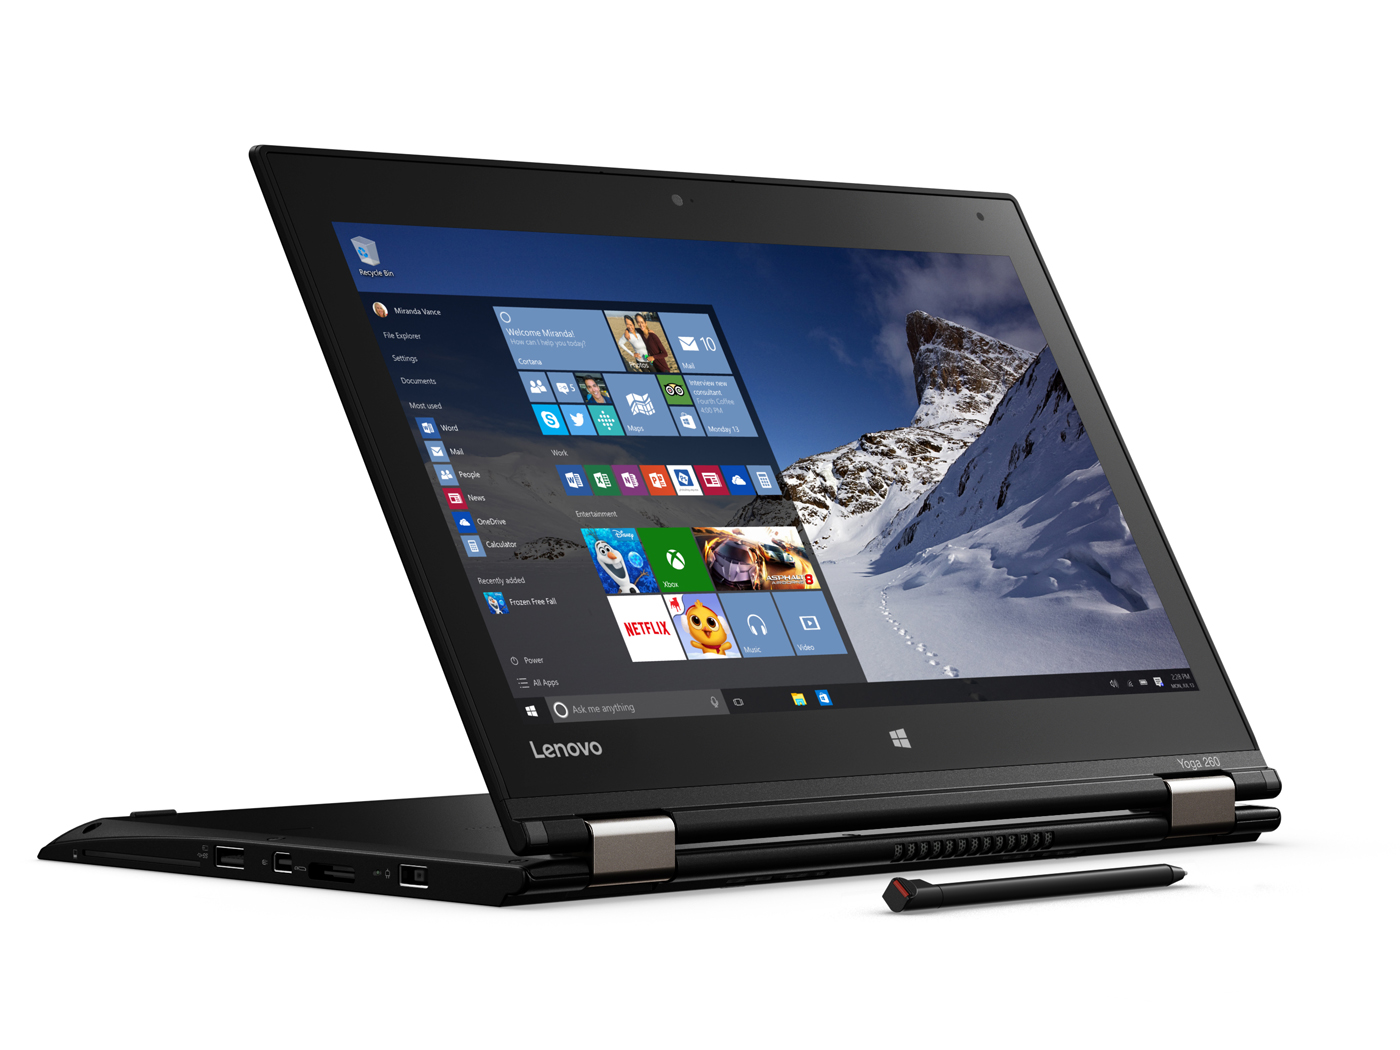 LENOVO THINKPAD YOGA 260 BROADCOM BLUETOOTH WINDOWS 8.1 DRIVERS DOWNLOAD